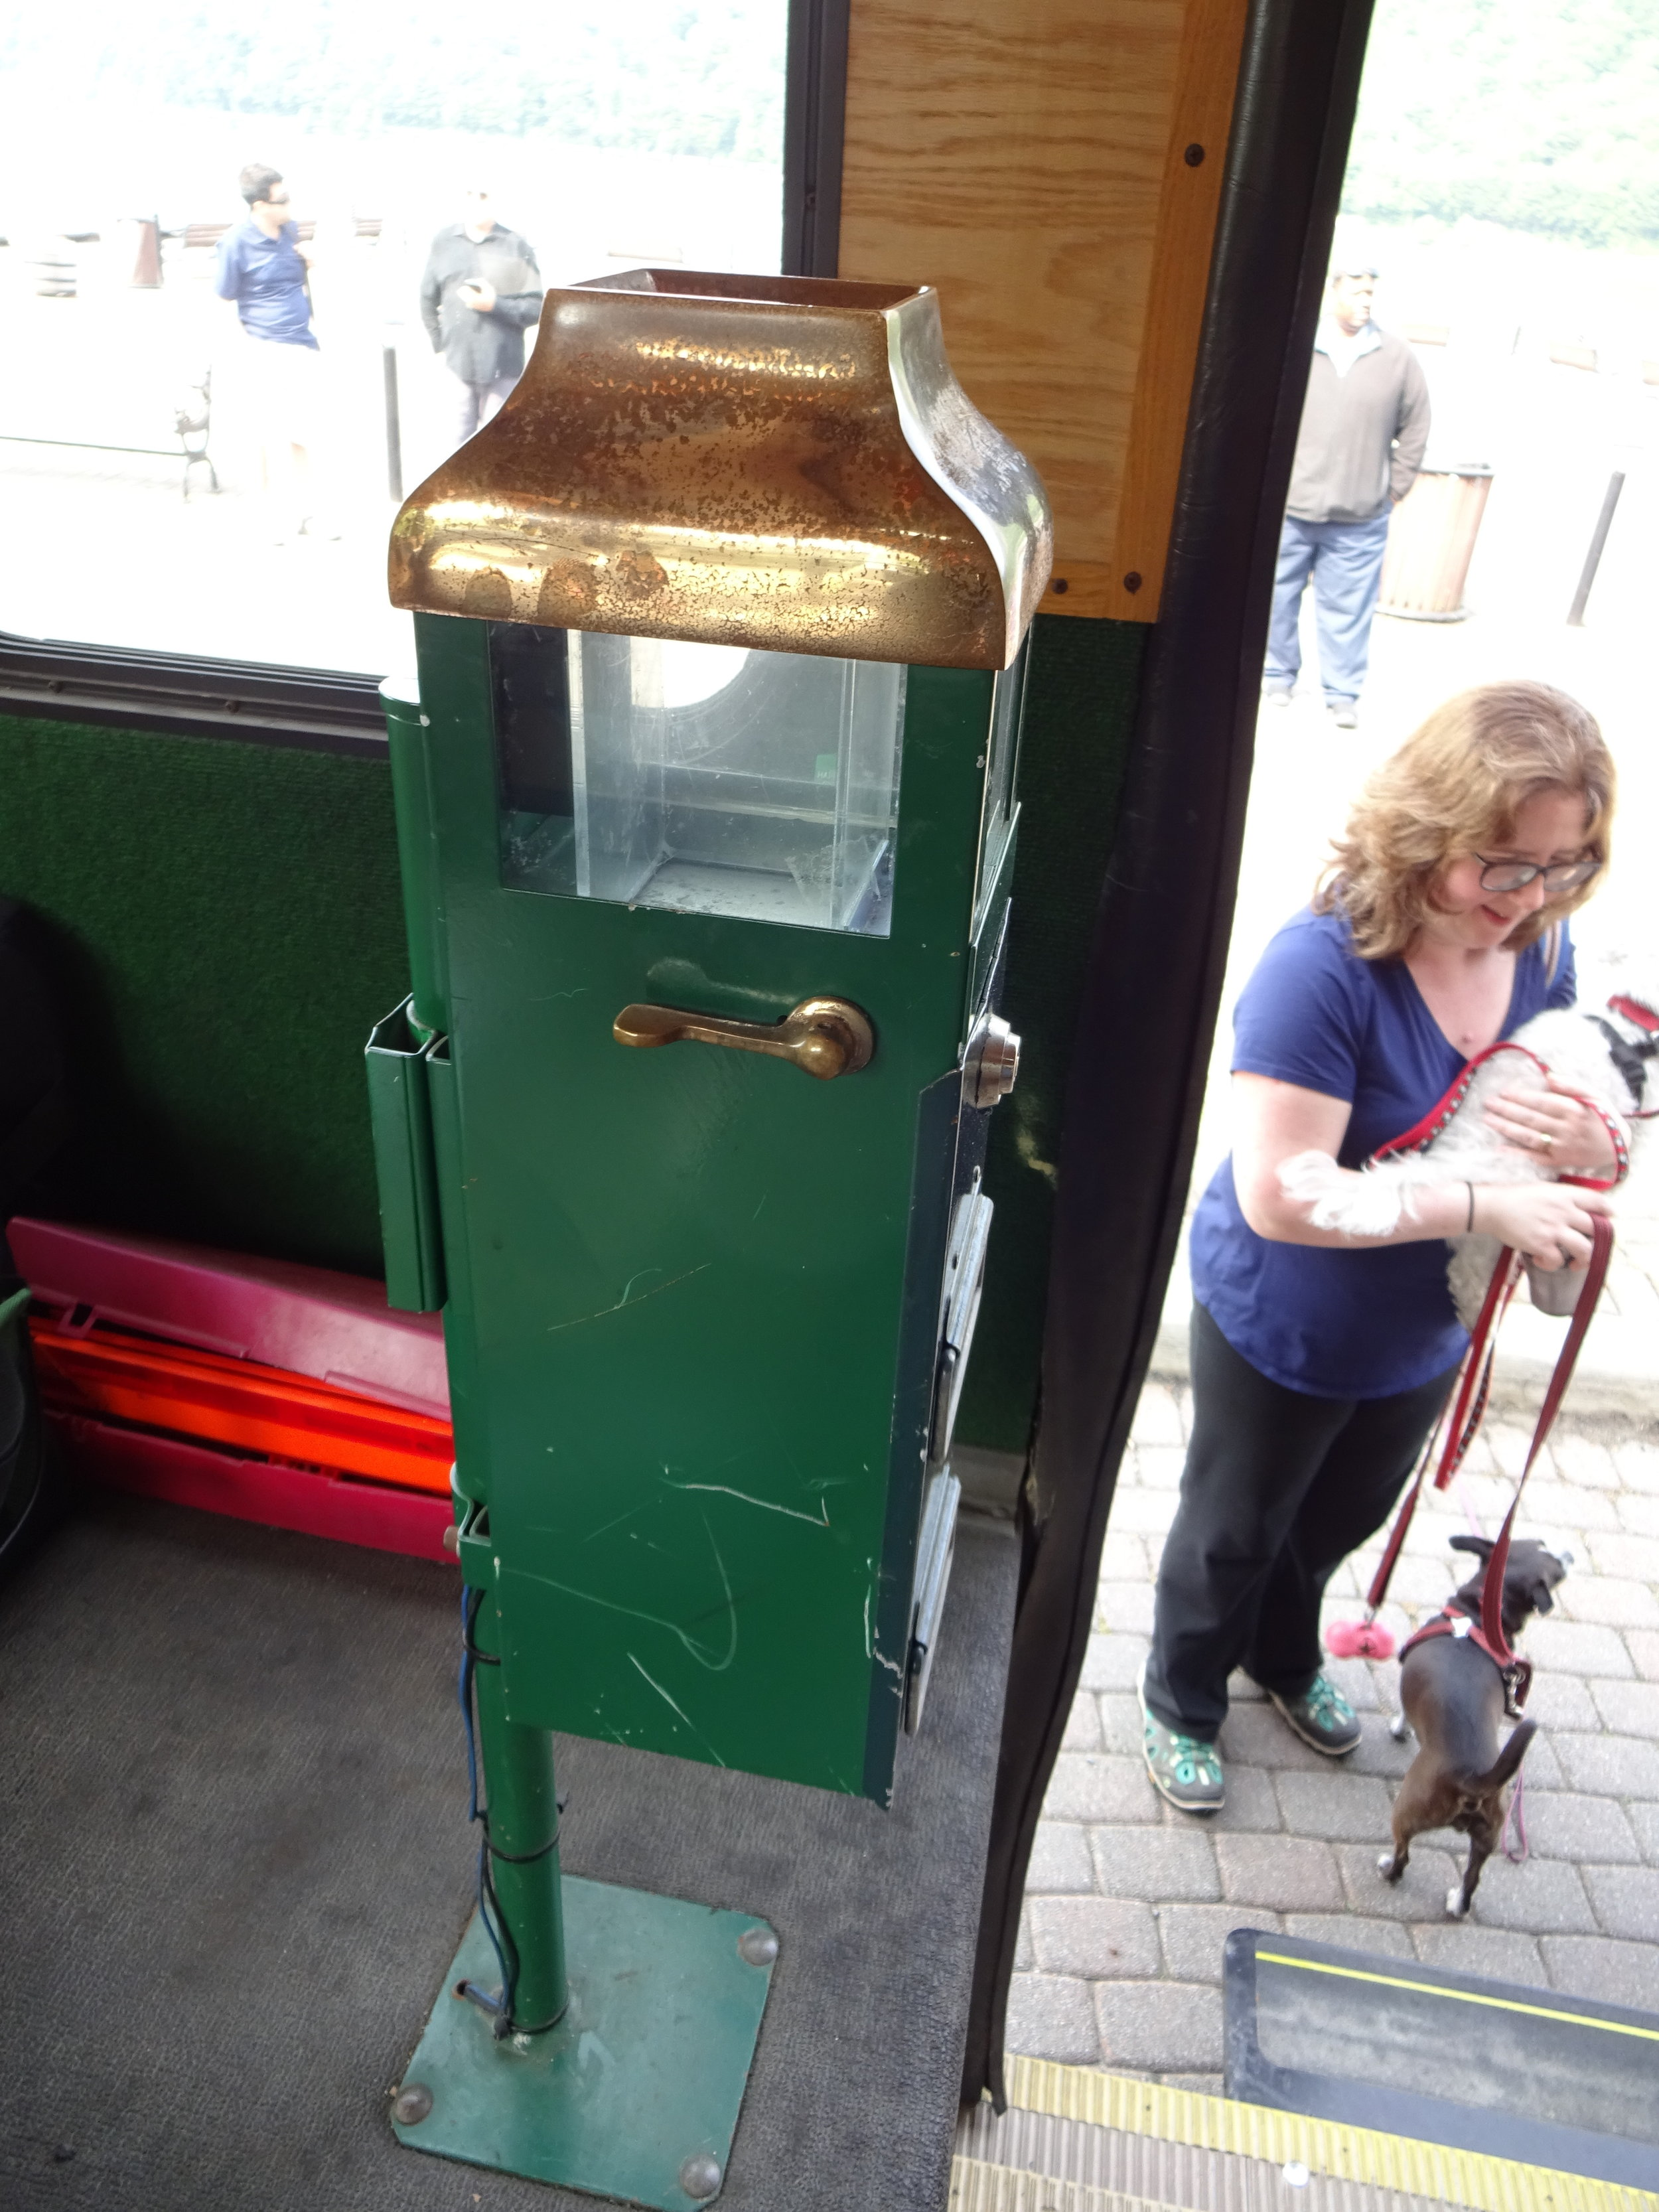 Trolley Fare Box - The trolley fare costs $2 for adults and $1 for senior citizens, students, ADA, and veterans. Children 12 and under ride for free. Riders must have the exact amount, the driver cannot provide change.